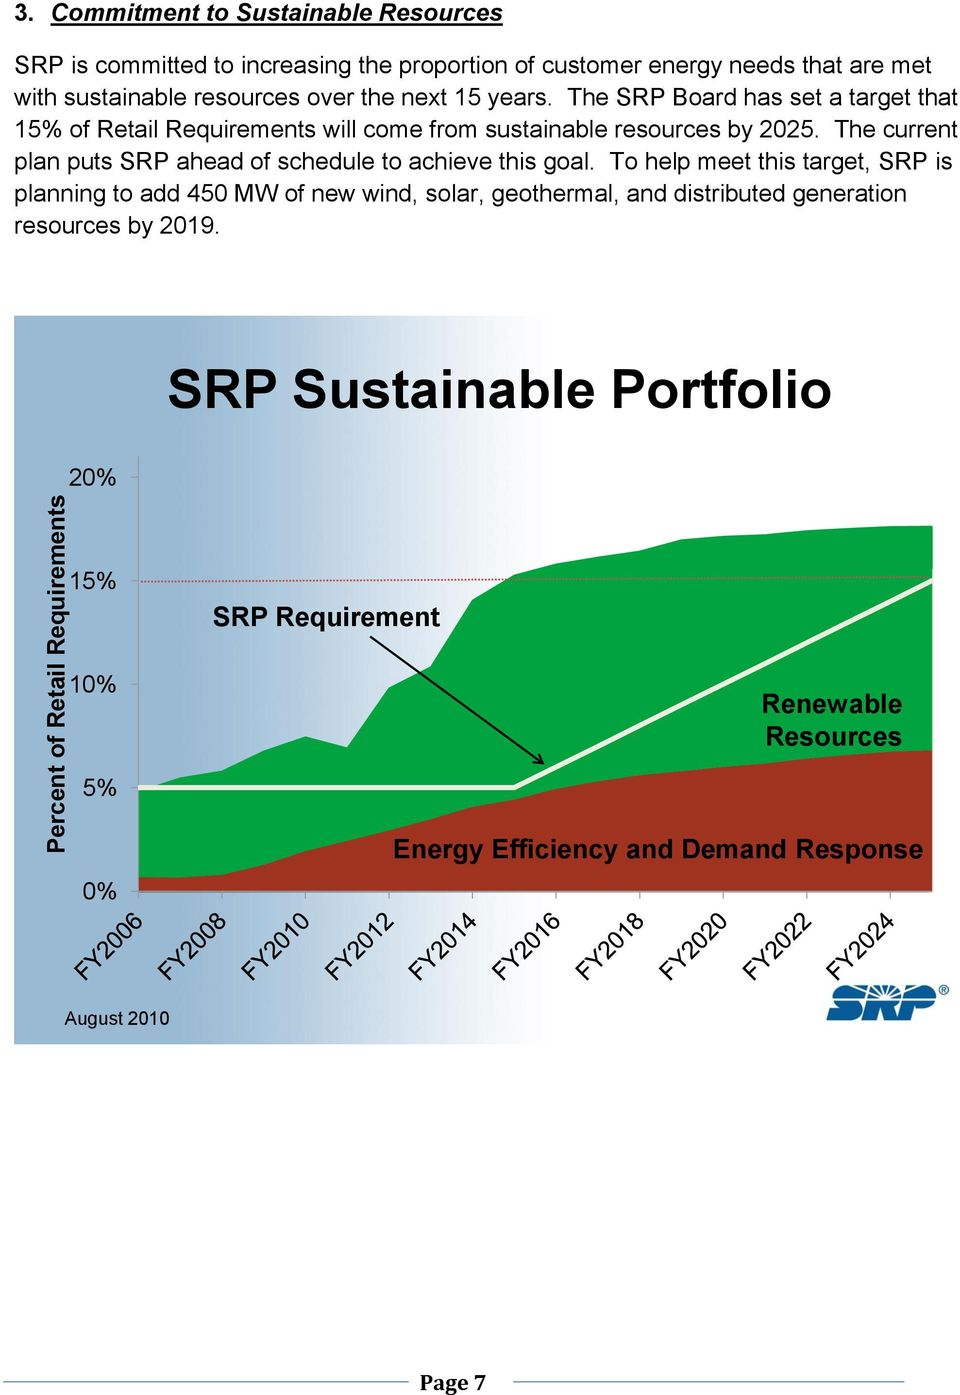 next 15 years. The SRP Board has set a target that 15% of Retail Requirements will come from sustainable resources by 2025.